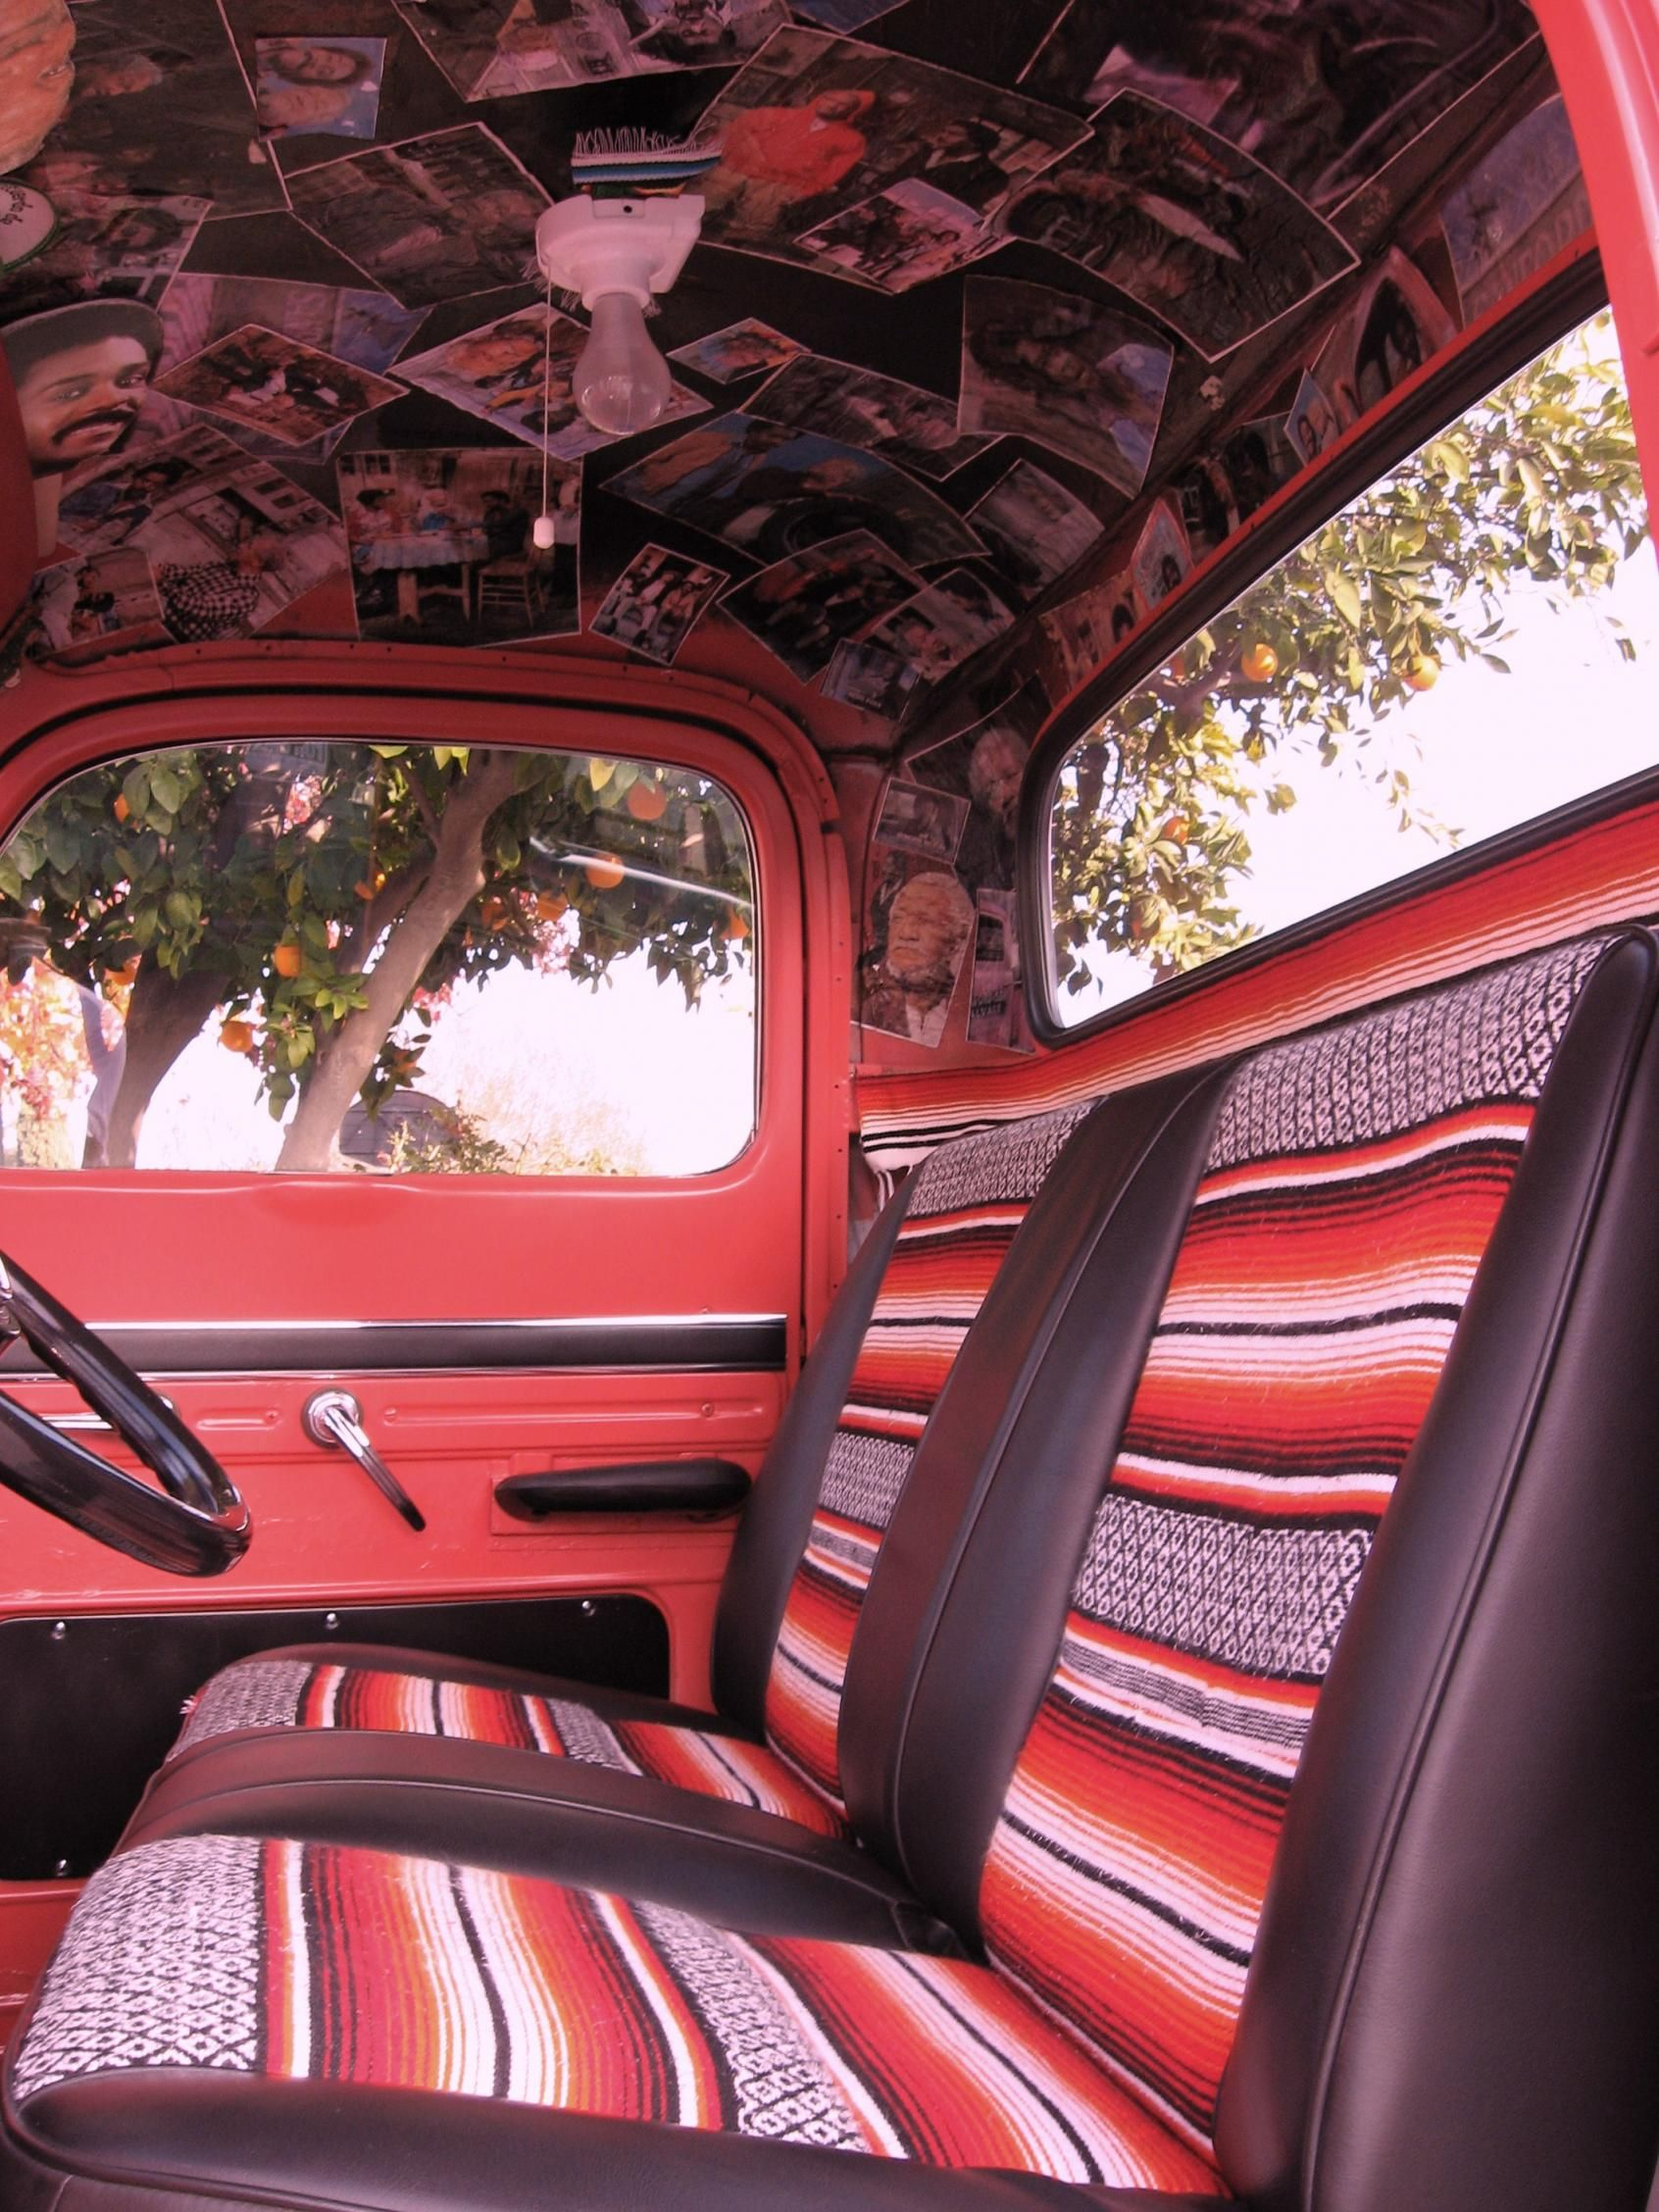 Vintage Truck with Serape Interior I want a truck that I can mod ...